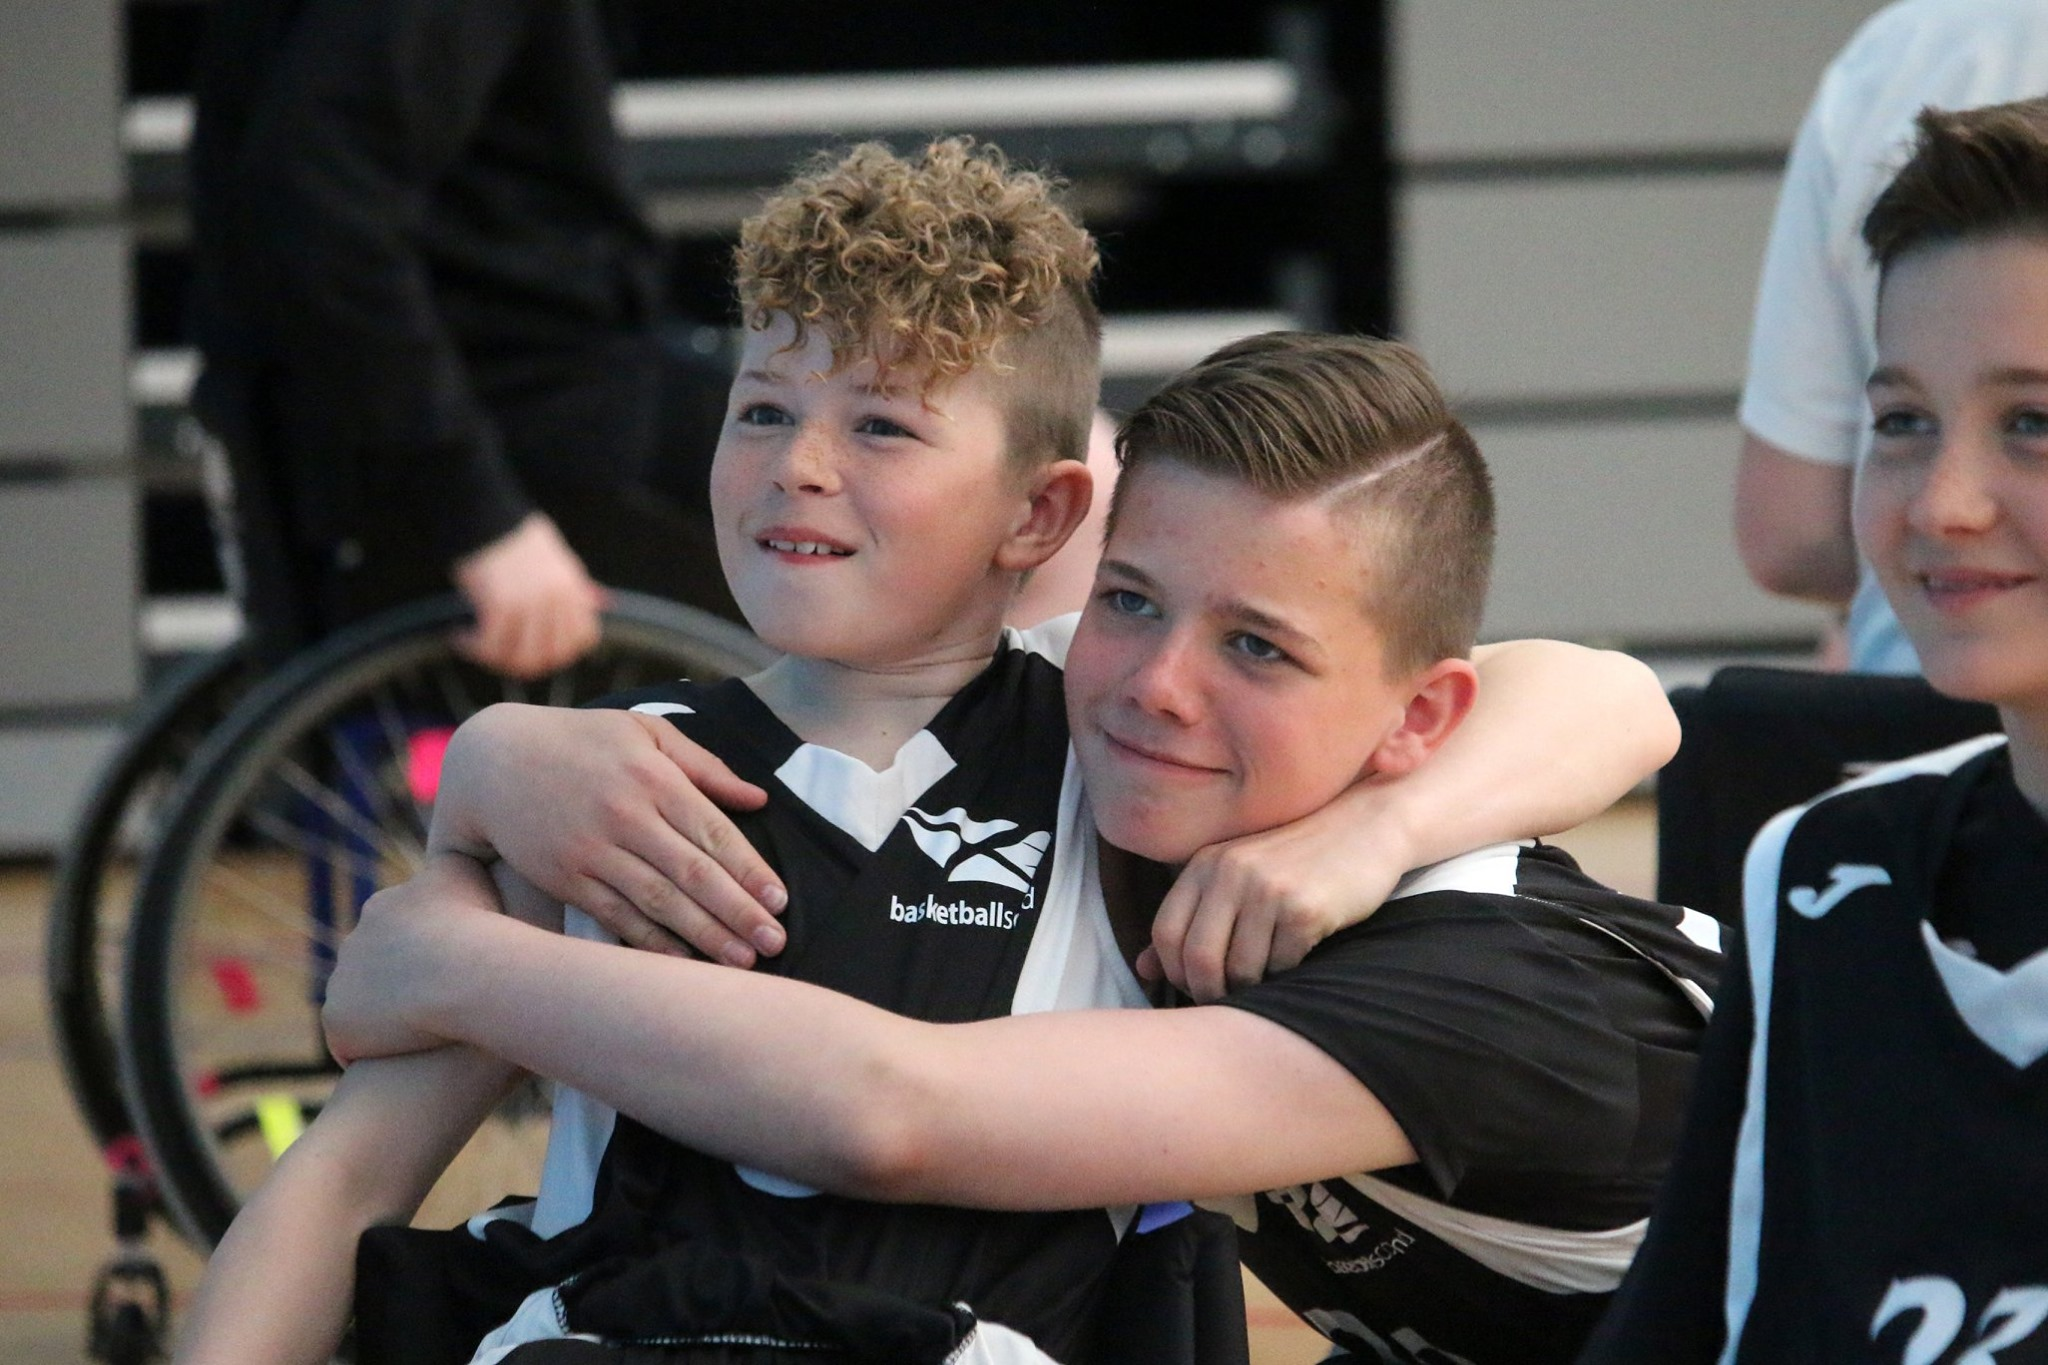 Wheelchair basketball participants celebrate win